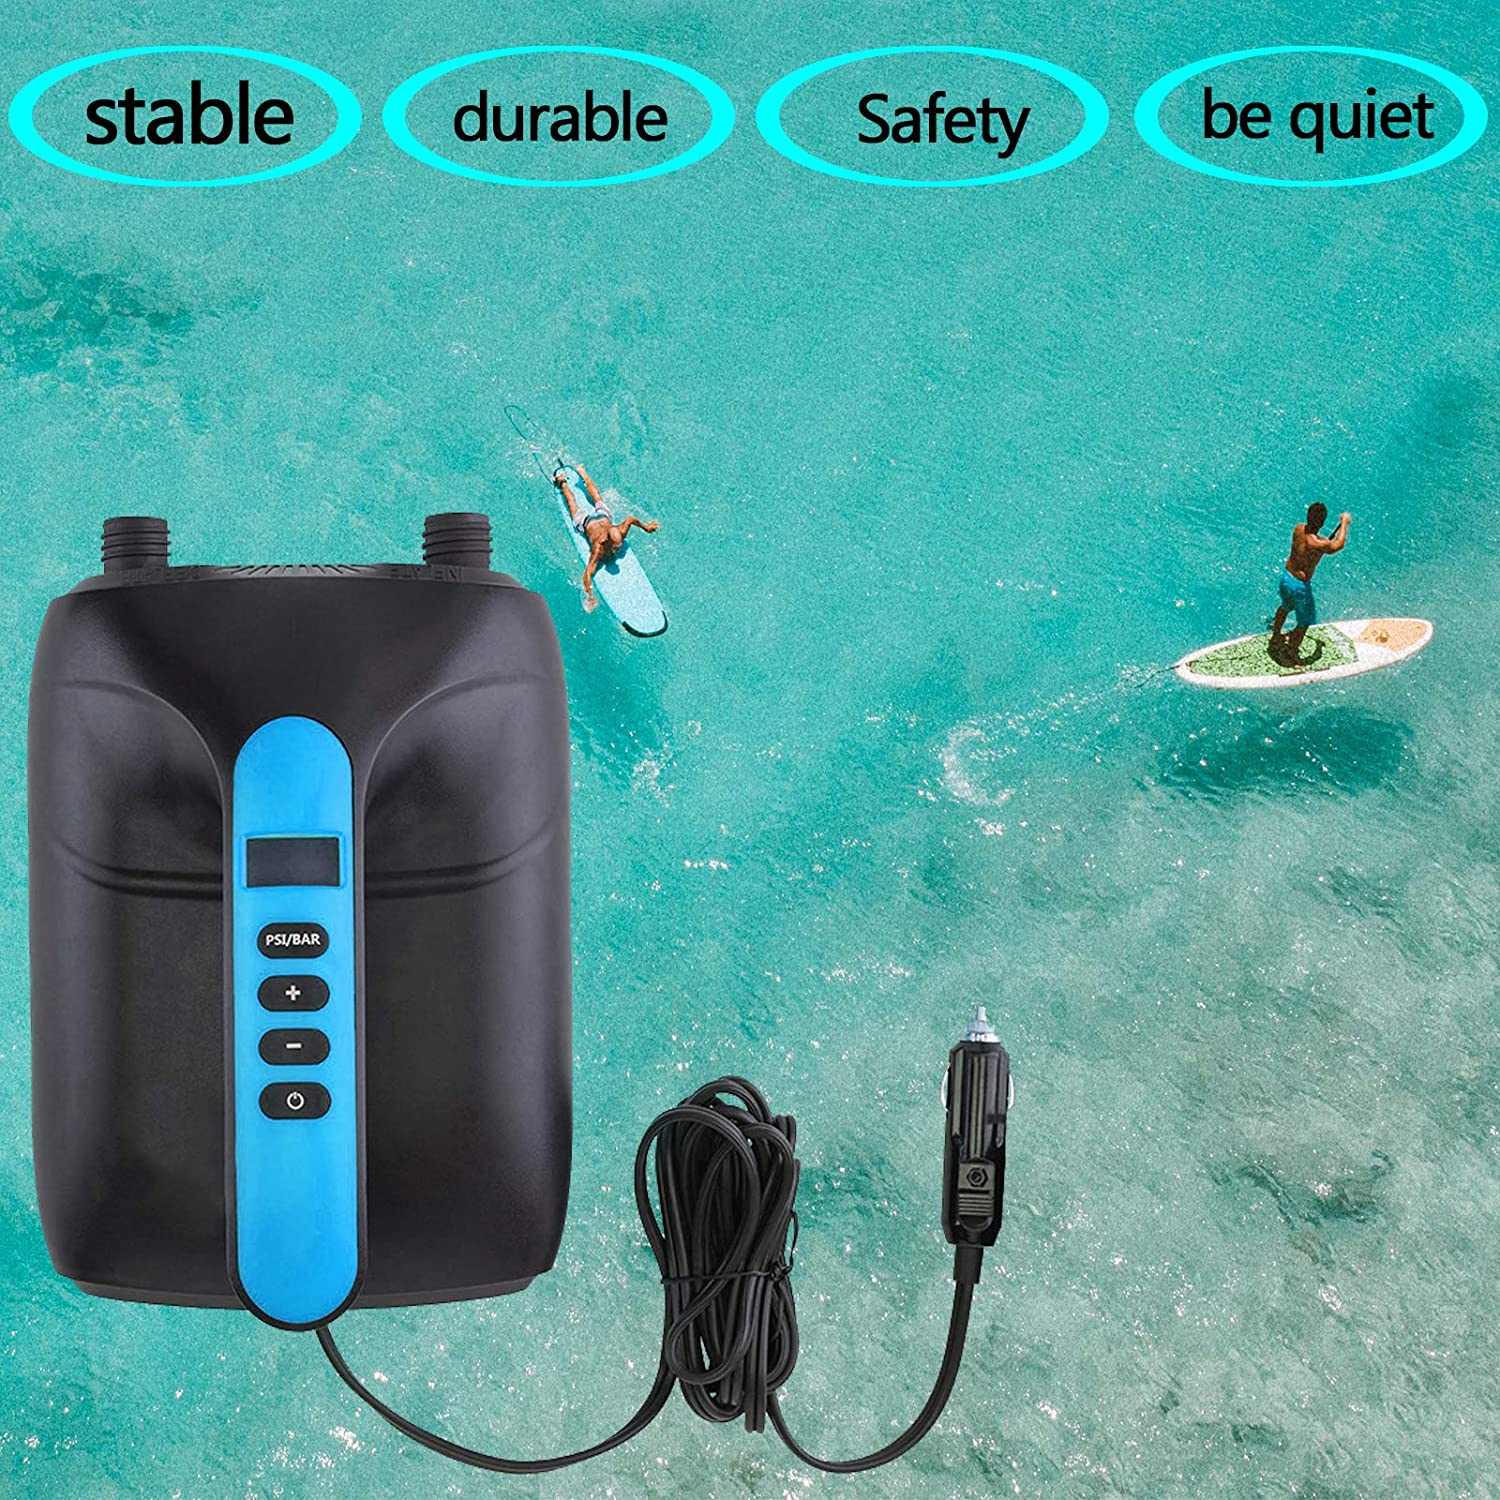 12V Smart High Pressure Pump Intelligent Dual Stage /& Auto-Off Function Inflatable Boats and Kayaks Great for Tent 20PSI SUP Digital Electric Air Pump Paddle Boards